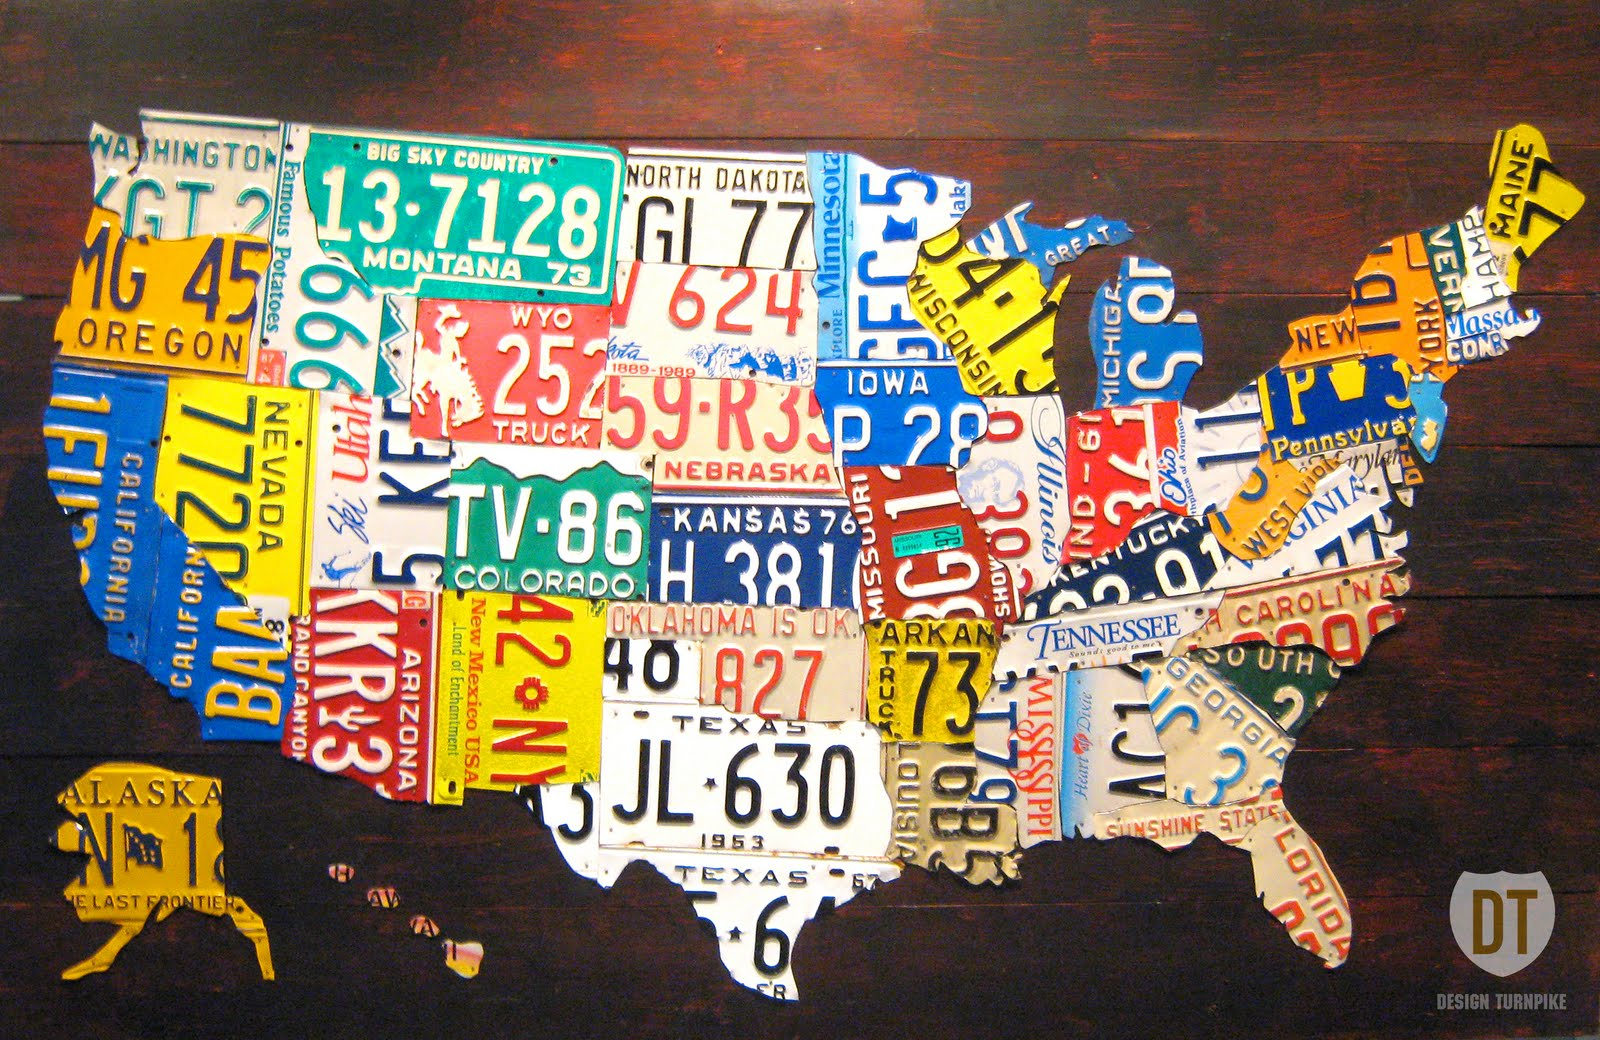 This Clic Map Uses State License Plates To Differentiate State Boundaries